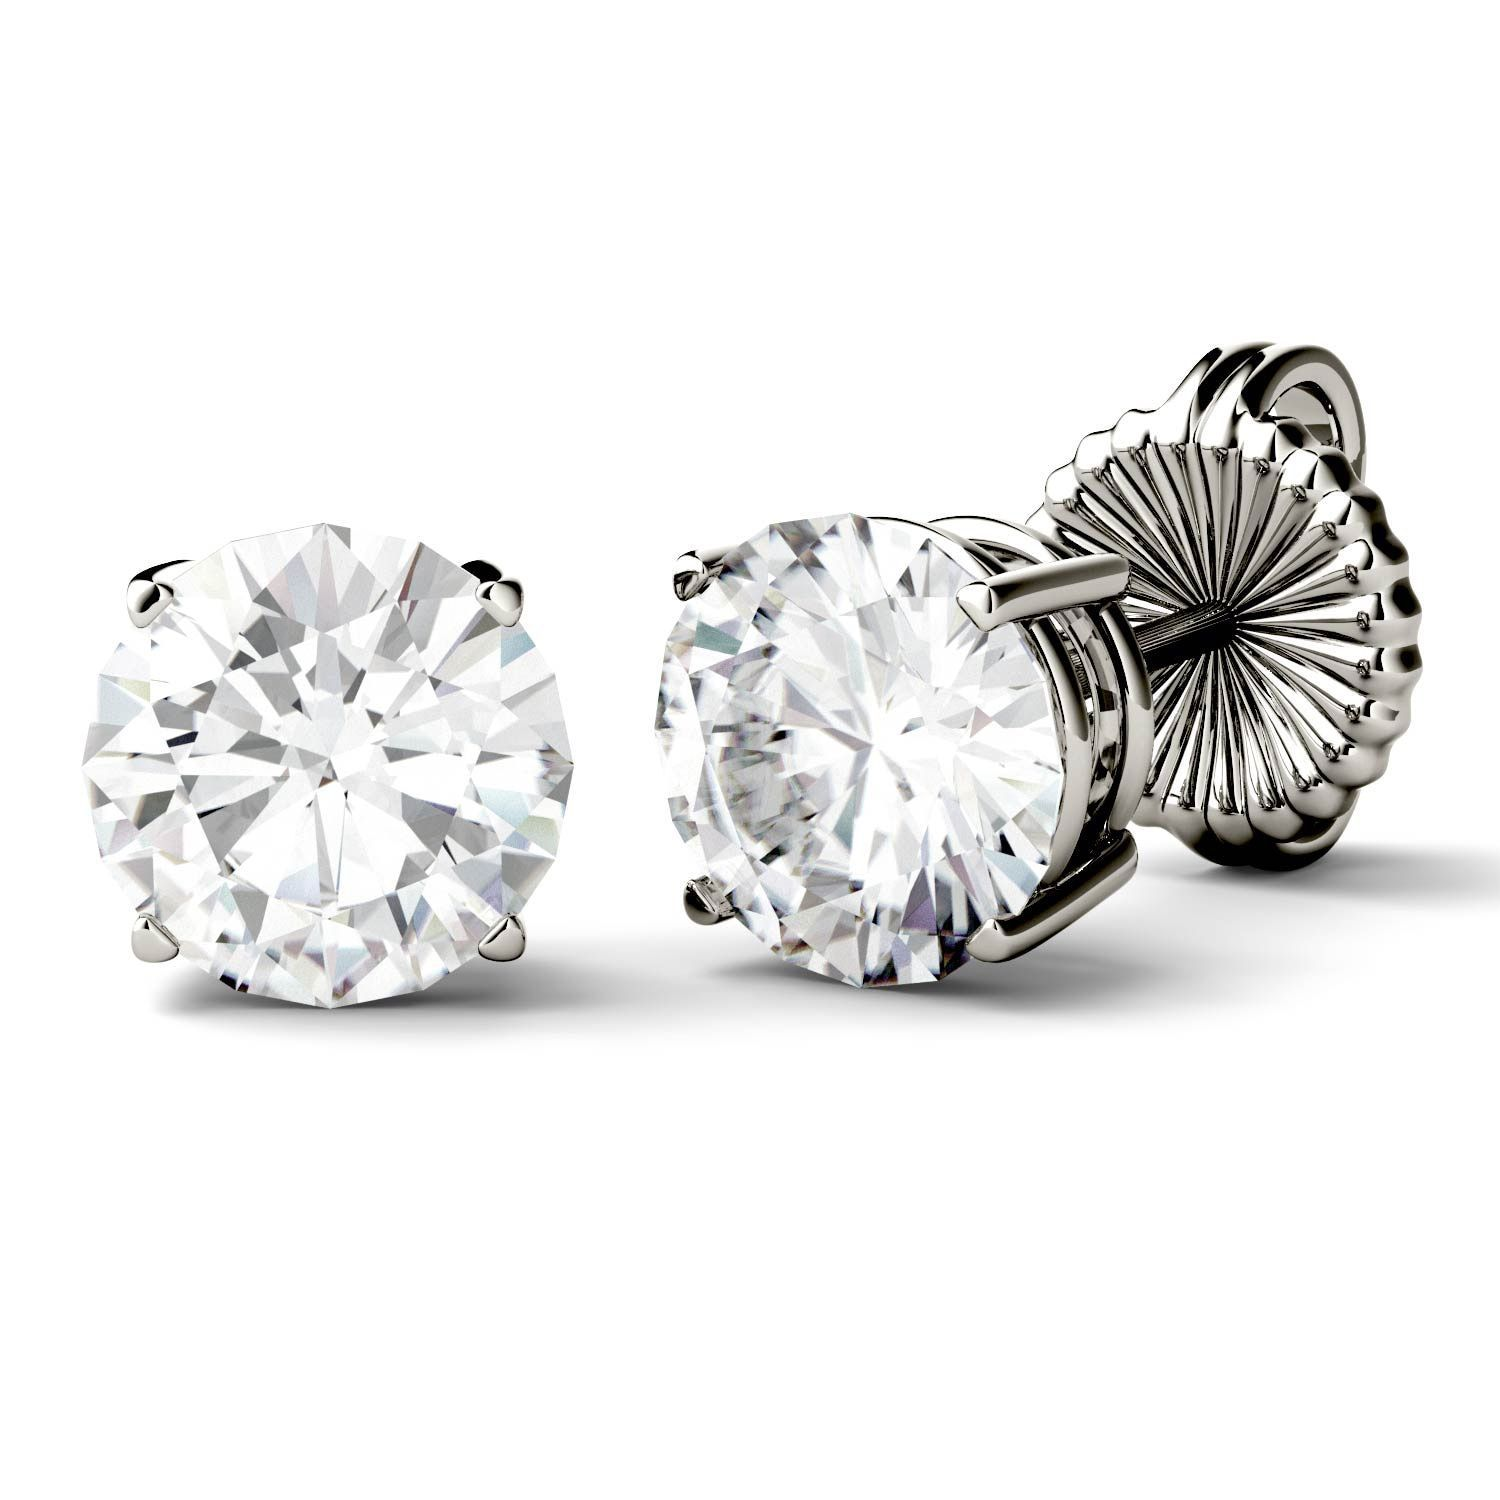 round brilliant colvard forever amazon moissanite earrings dp com by stud charles jewelry dew gold white